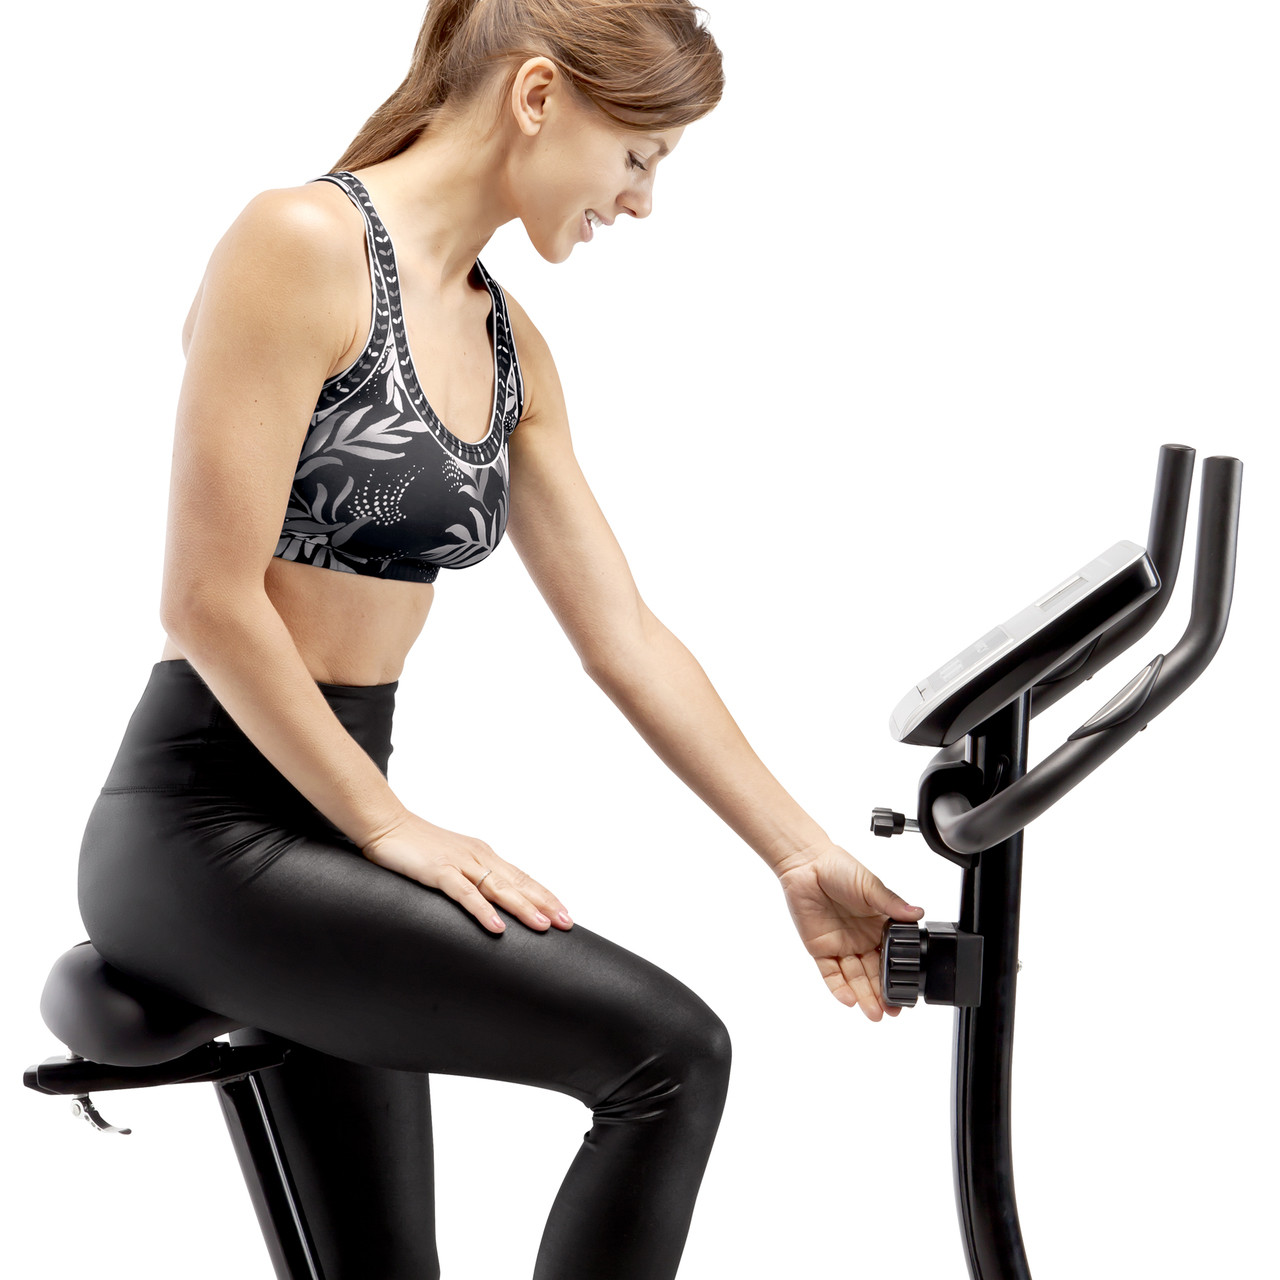 Marcy Magnetic Upright Bike ME-1016U has an adjustable tension knob to change resistance